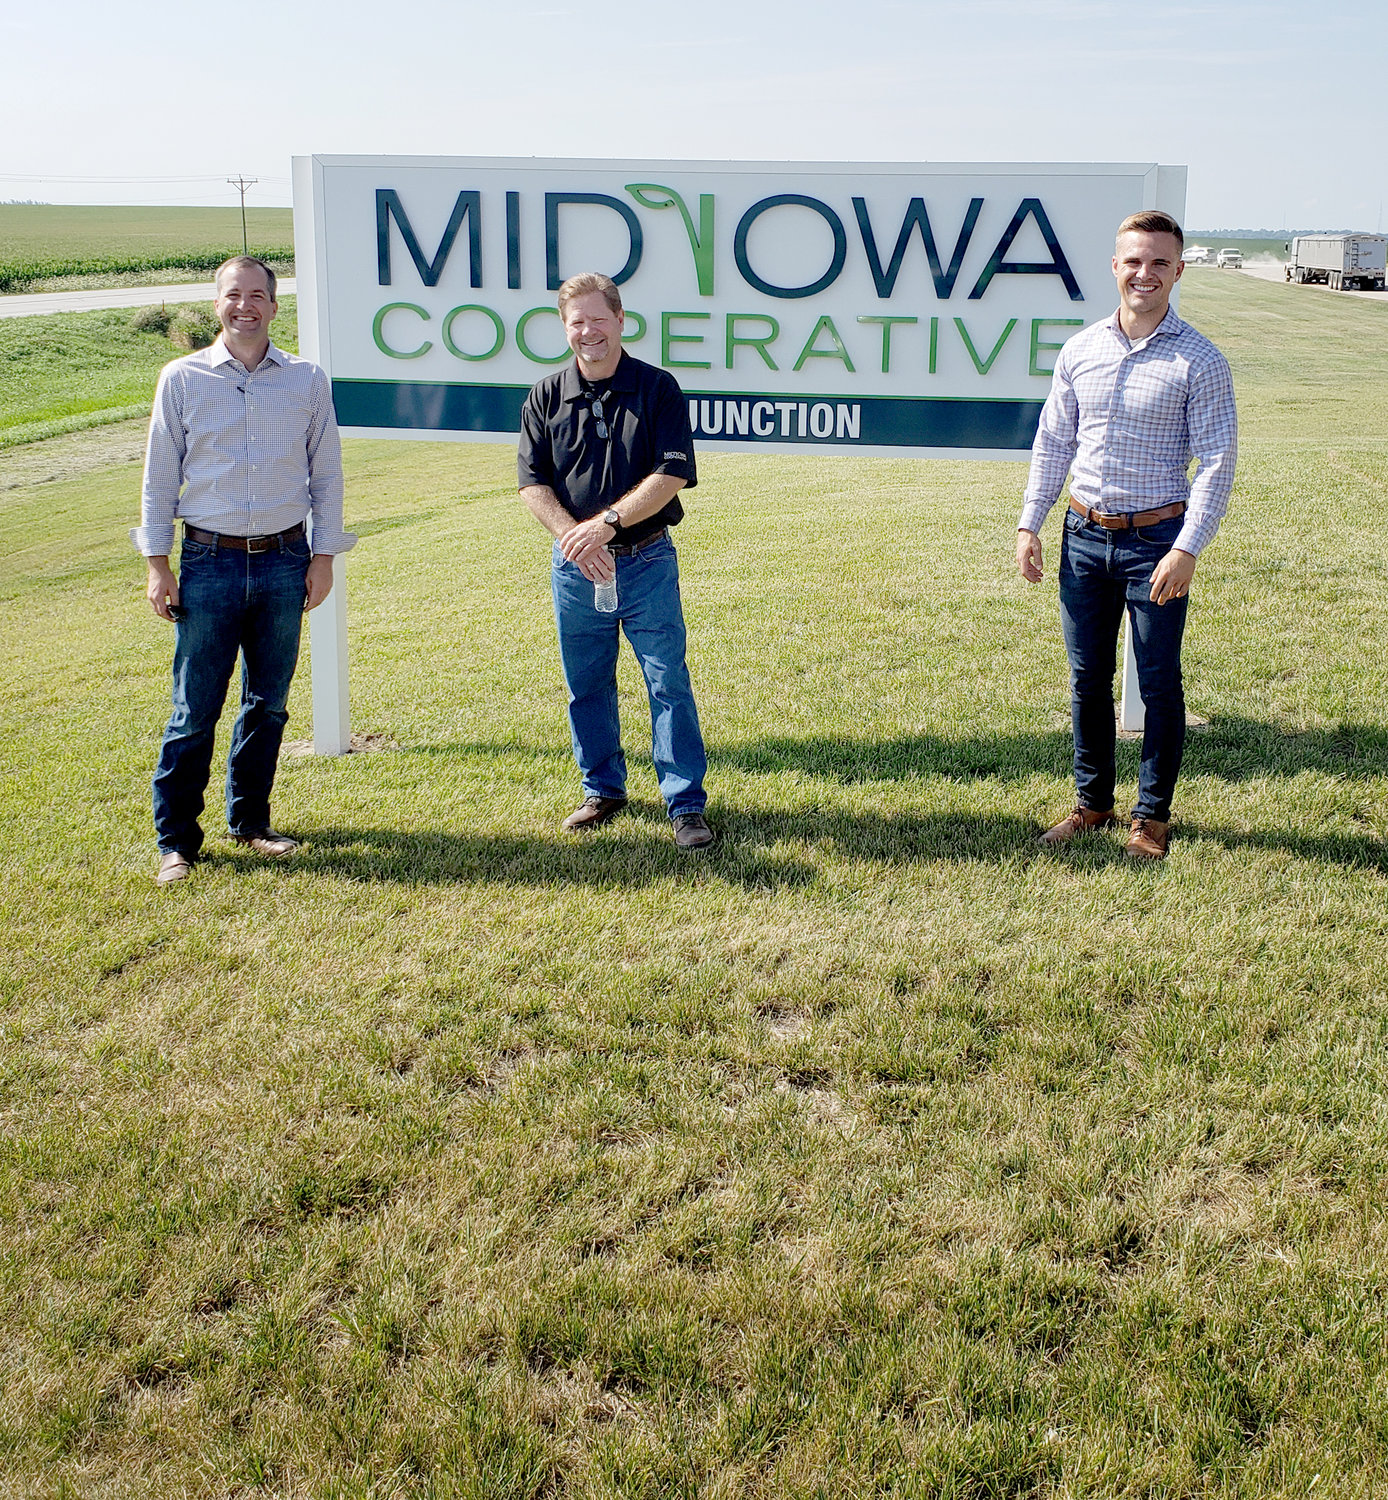 From left: Iowa Secretary of Agriculture Mike Naig, Mid Iowa Coop CEO Mike Kinley and Naig's special assistant and policy advisor  Alex Freeman.